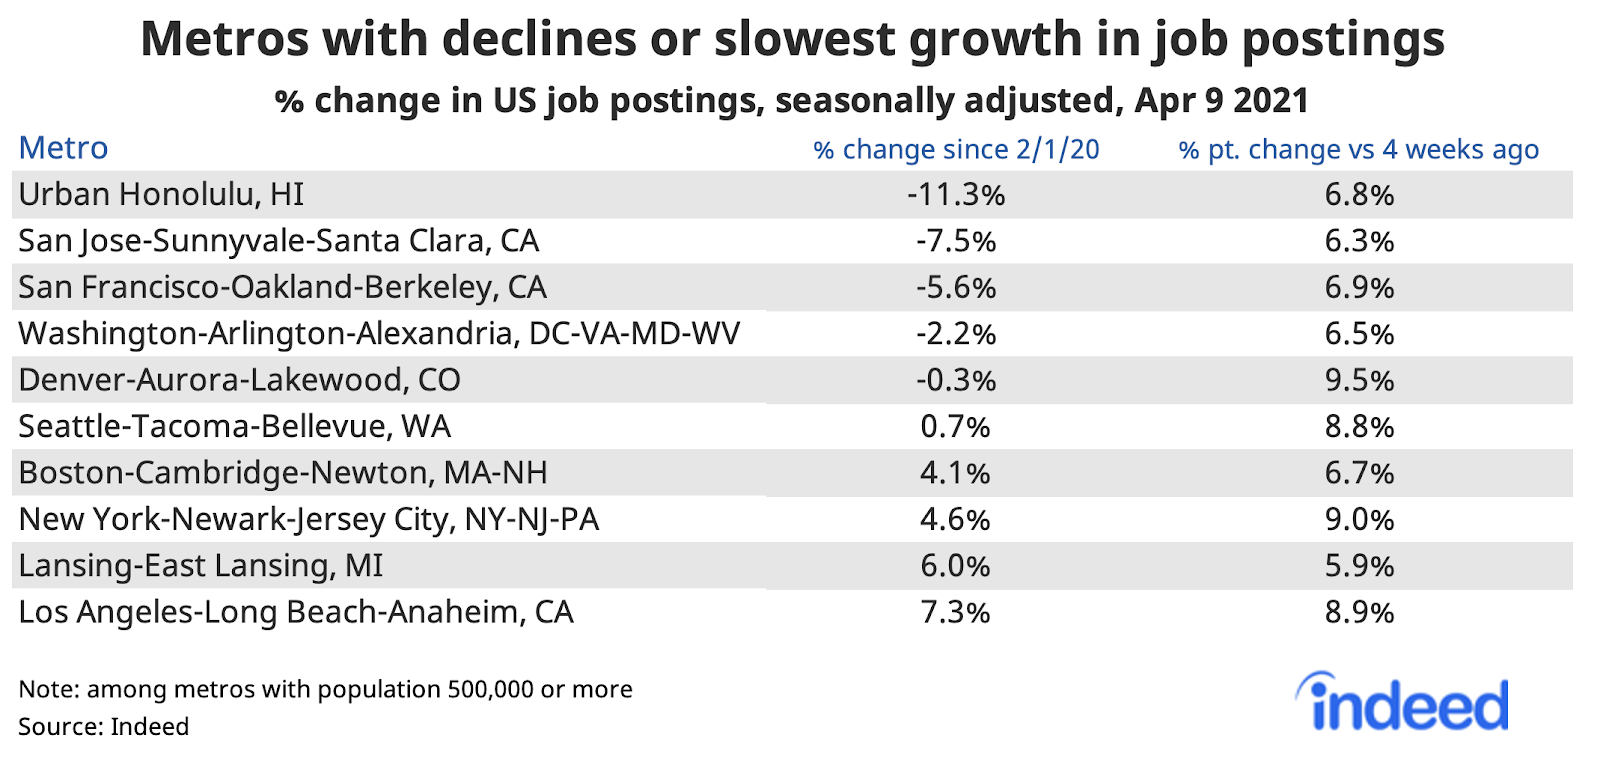 Table showing metros with declines or slowest growth in job postings